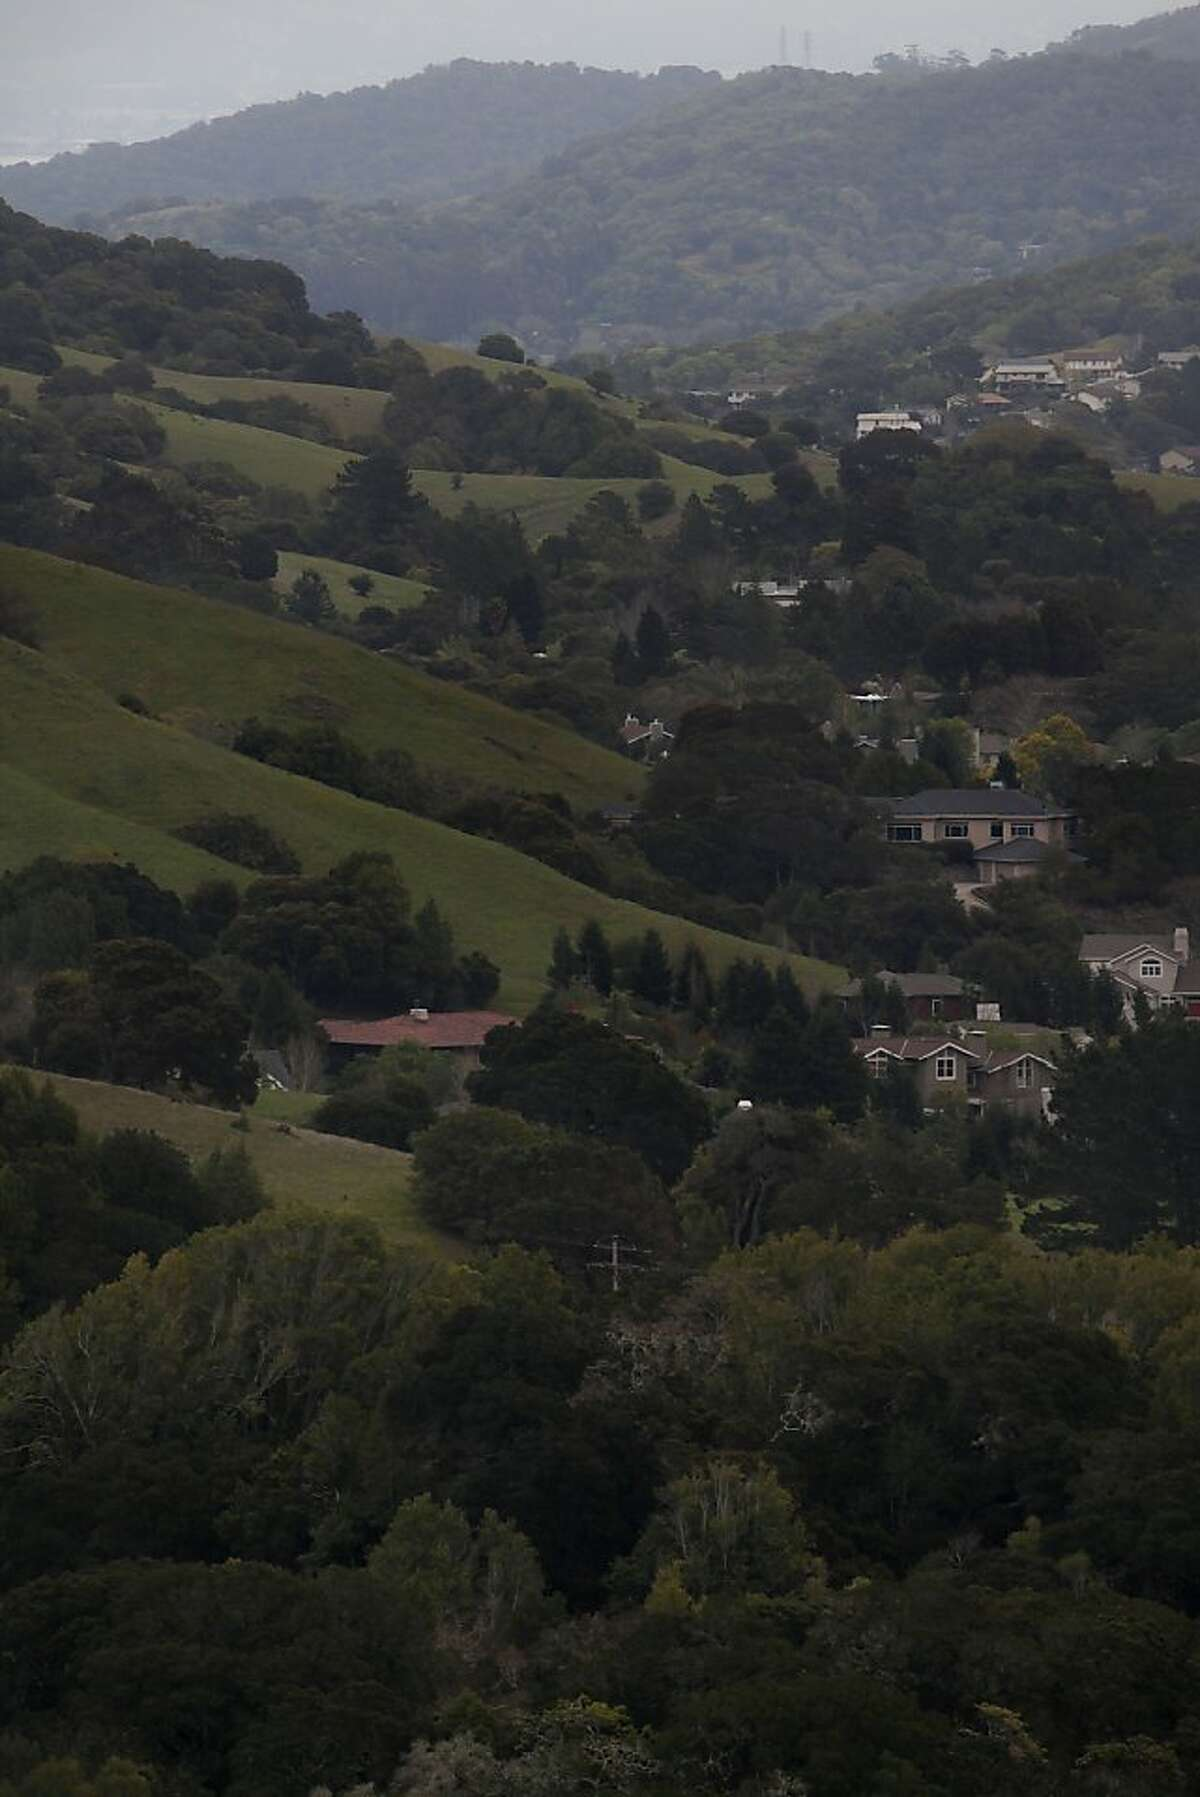 George Lucas will be building a 270,000 square foot digital media production compound on Grady Ranch in San Rafael, Calif., on the clear hillside (front left, in front of red roof) fronting a 174 house community seen in the background on Friday, March 30, 2012.